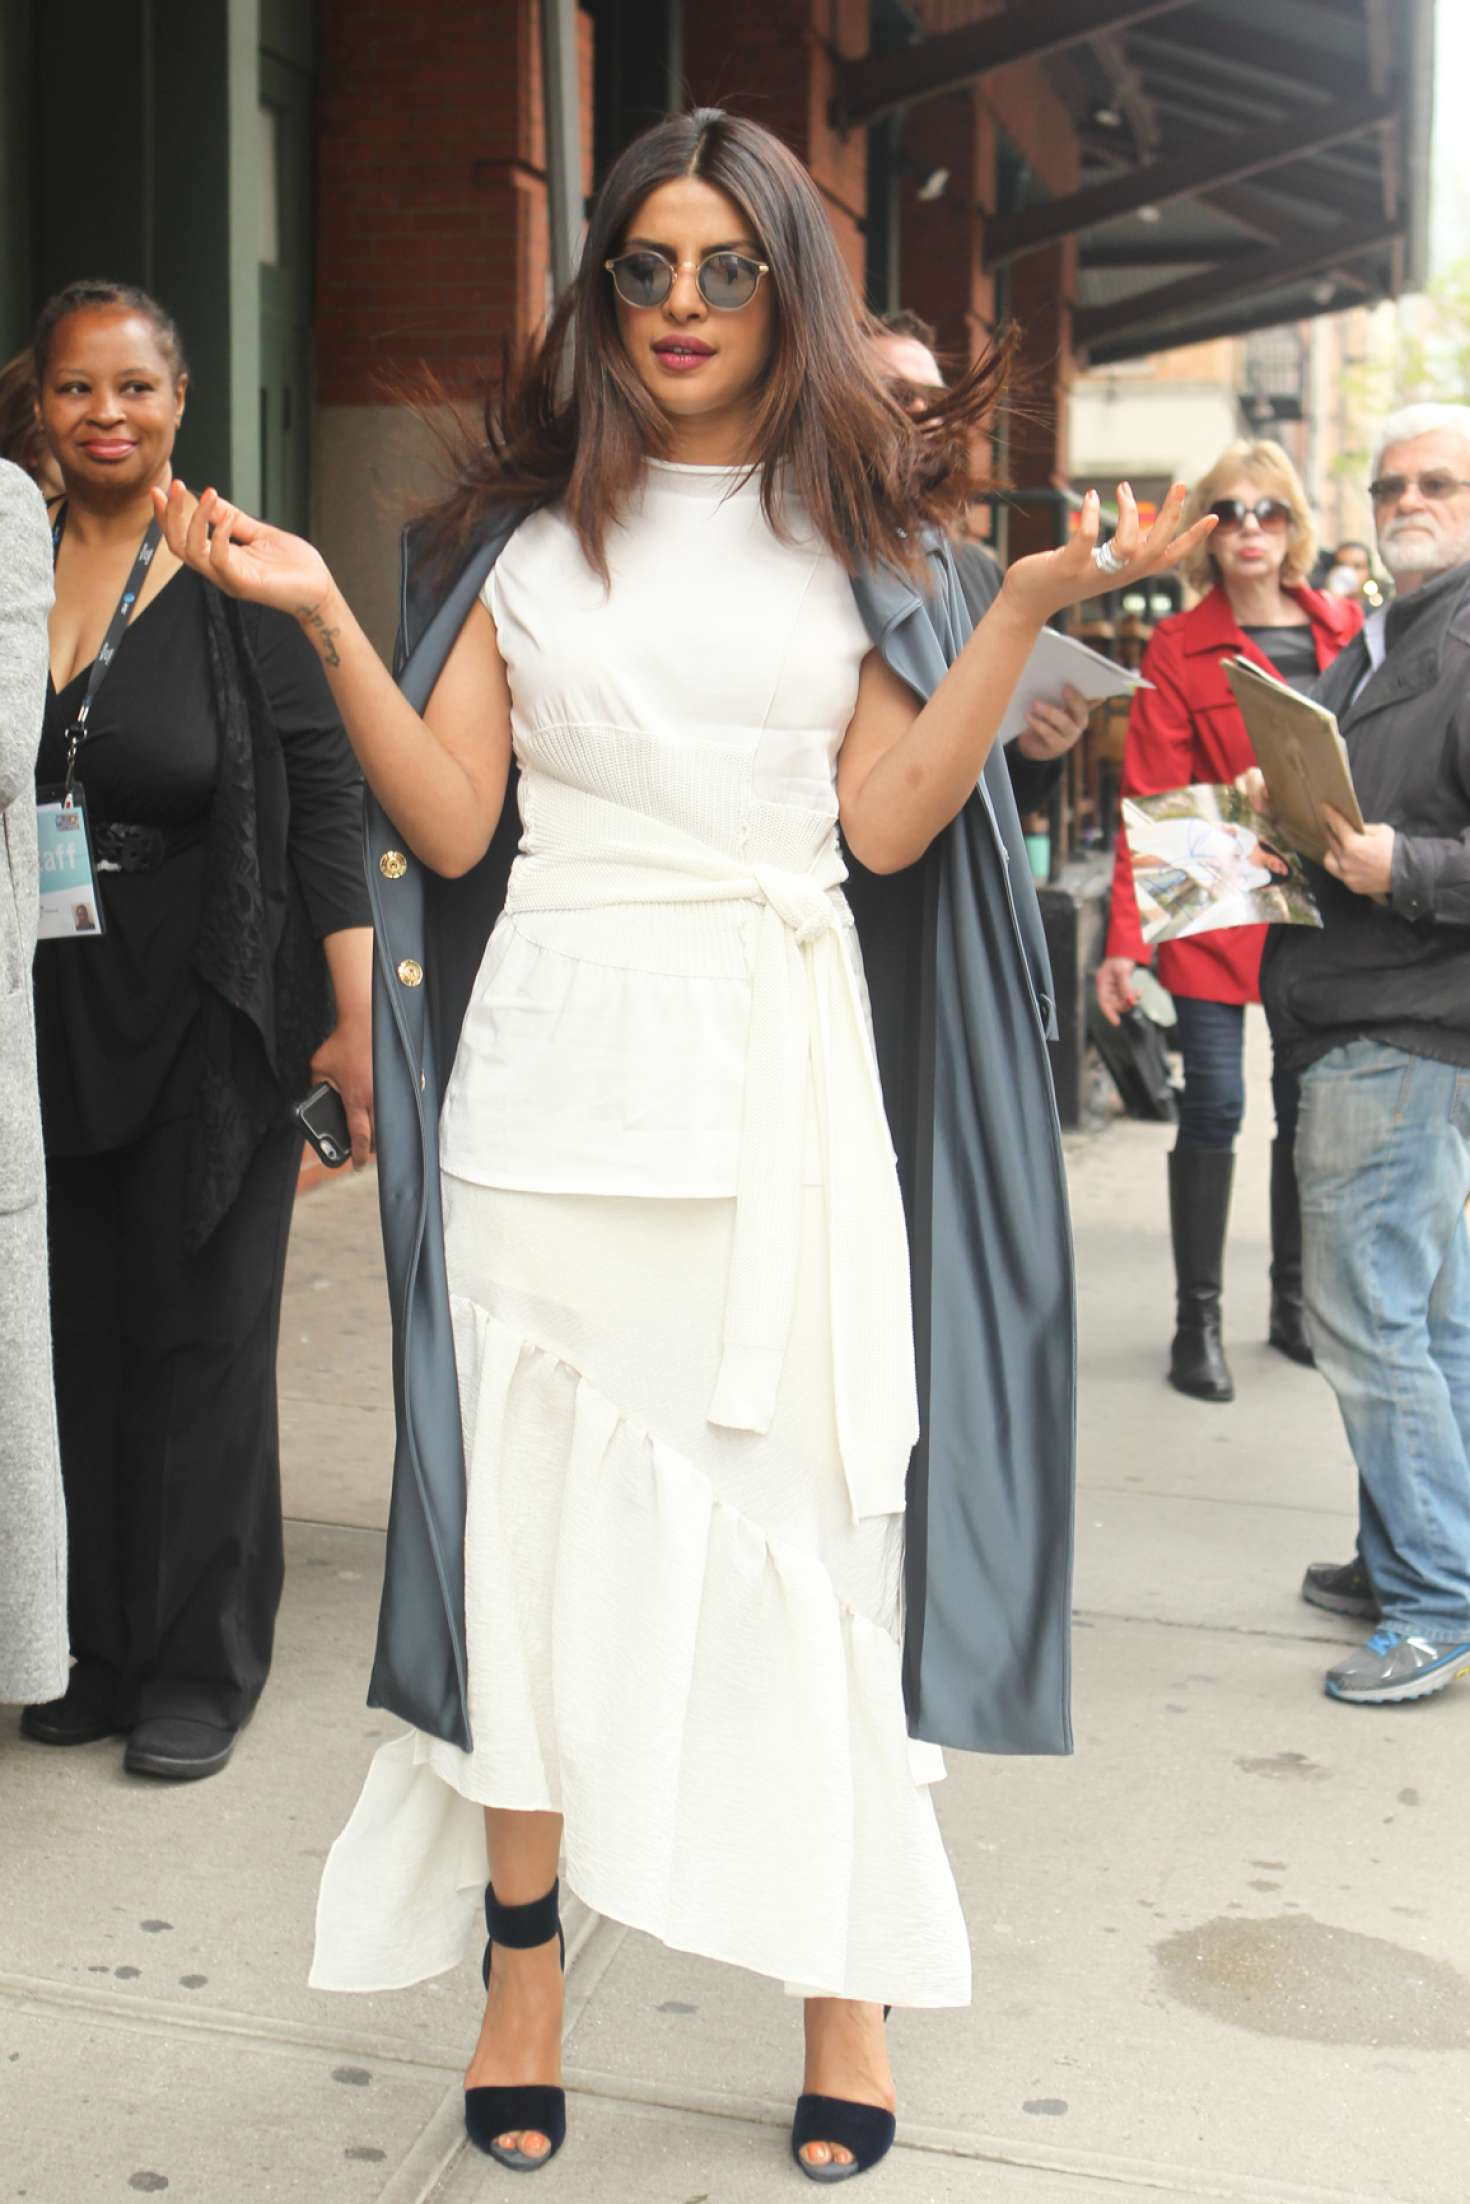 Priyanka Chopra – Spotted while out in New York City   Priyanka-Chopra:-Seen-out-in-New-York-City-11